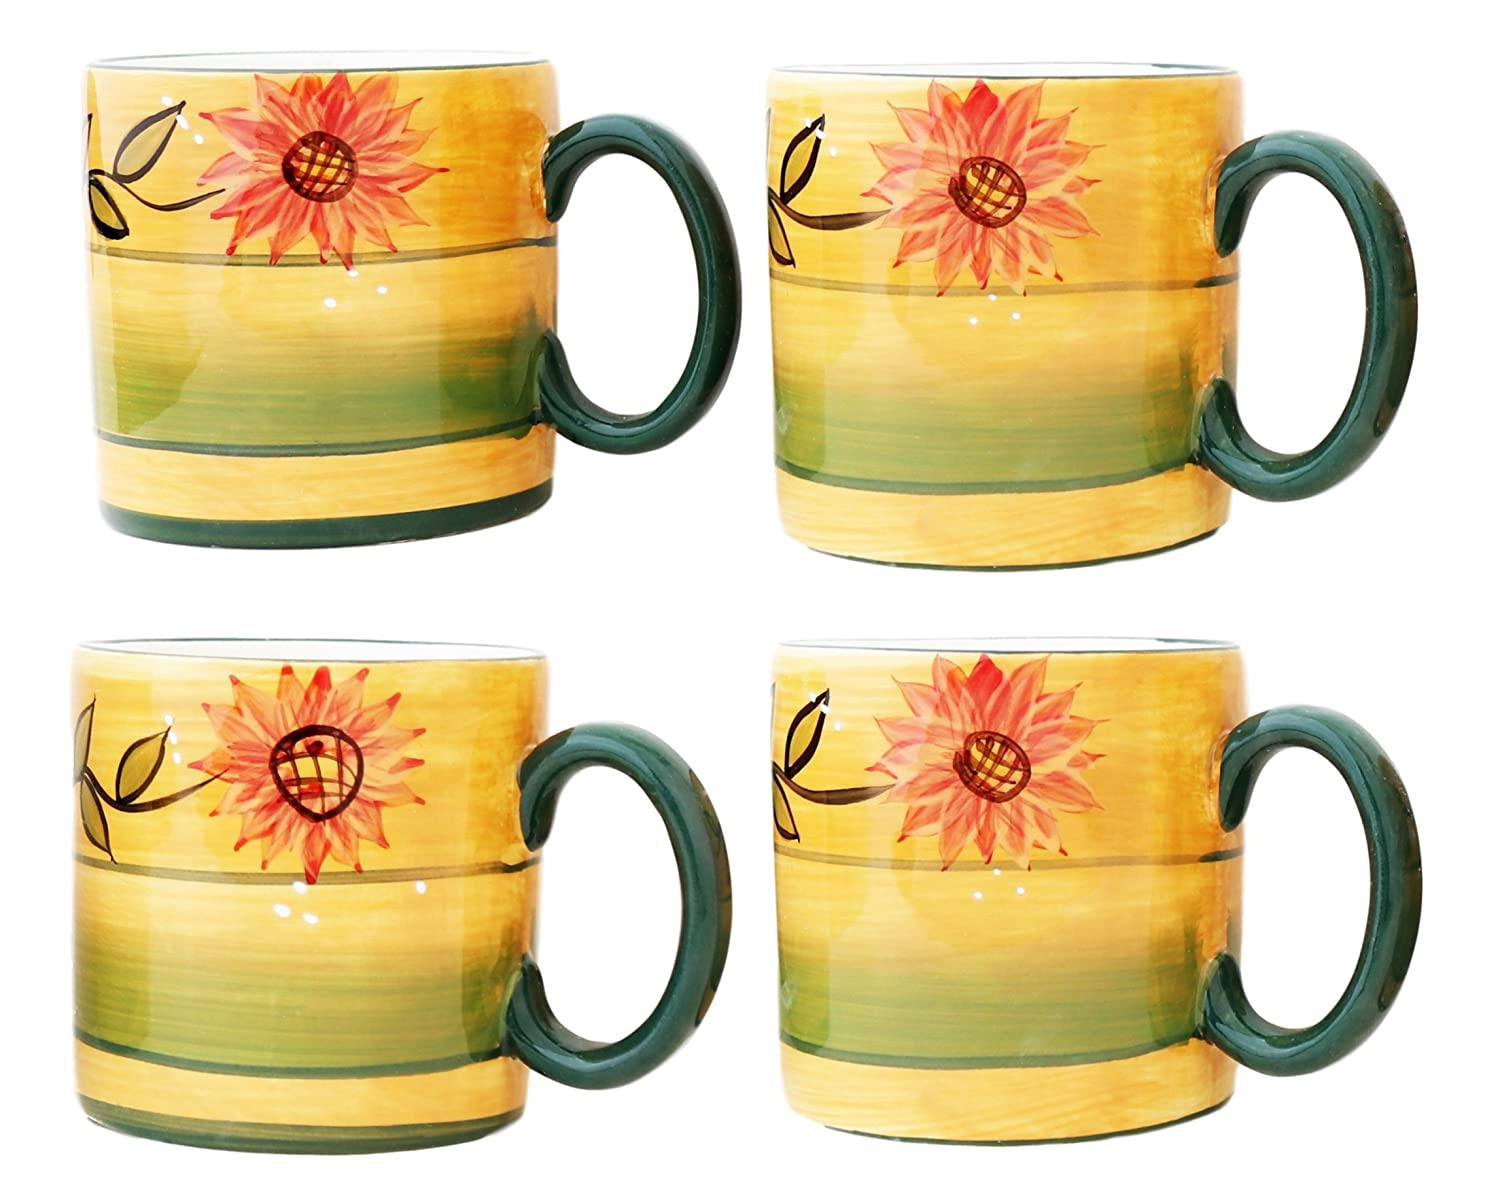 Country Sunflower Mug (Set of 4) A.C.K. Trading Co. 82915